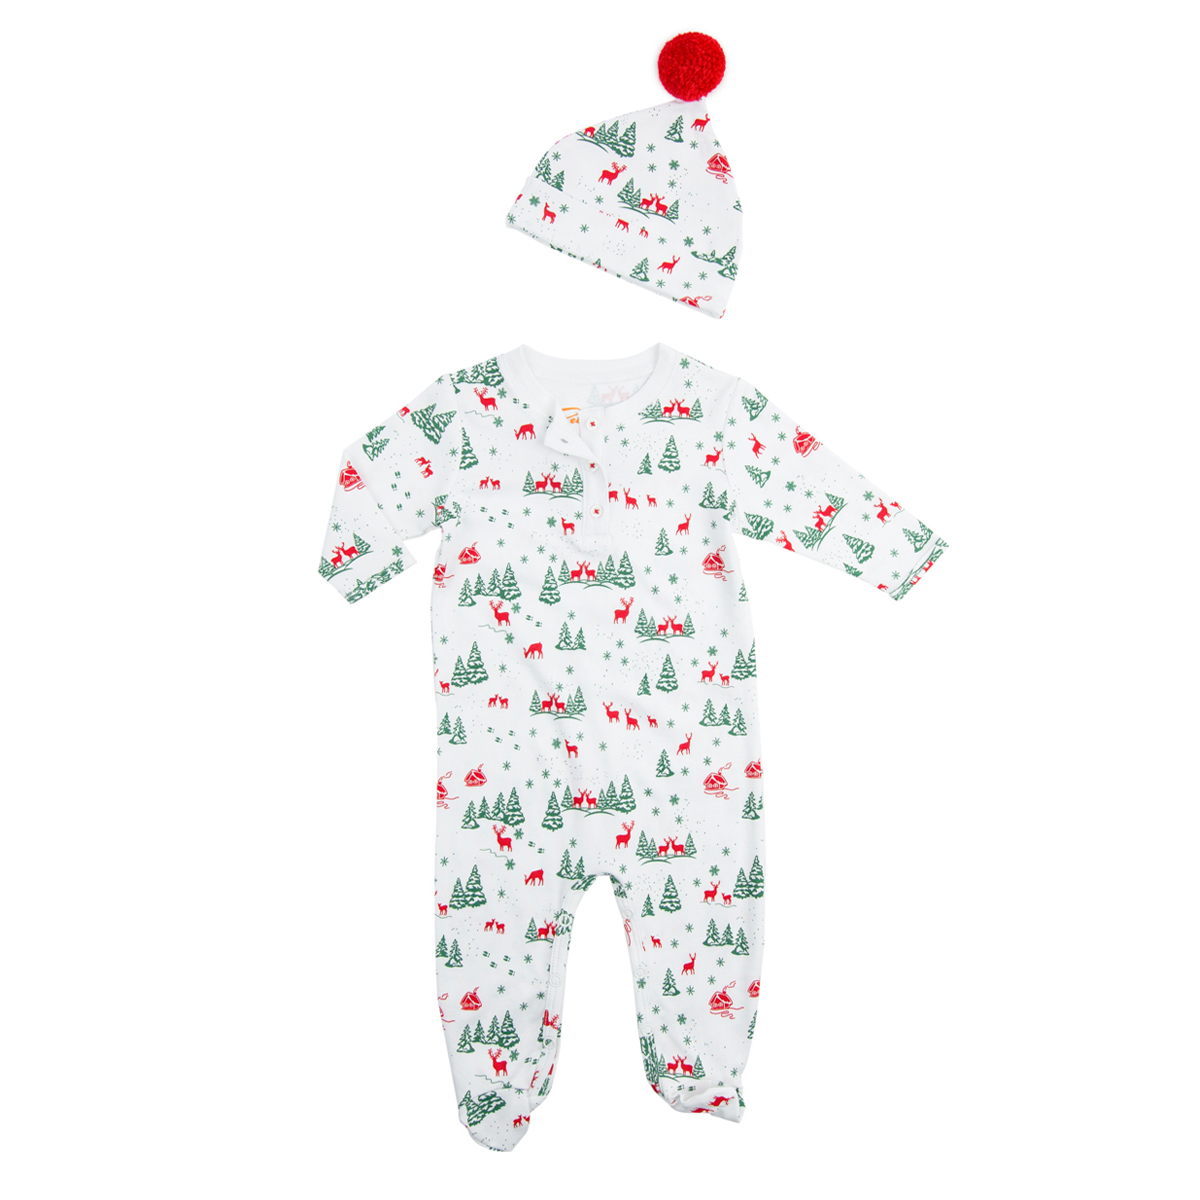 Petidoux Pima Cotton Footed Onesie & Hat set in white with red reindeer